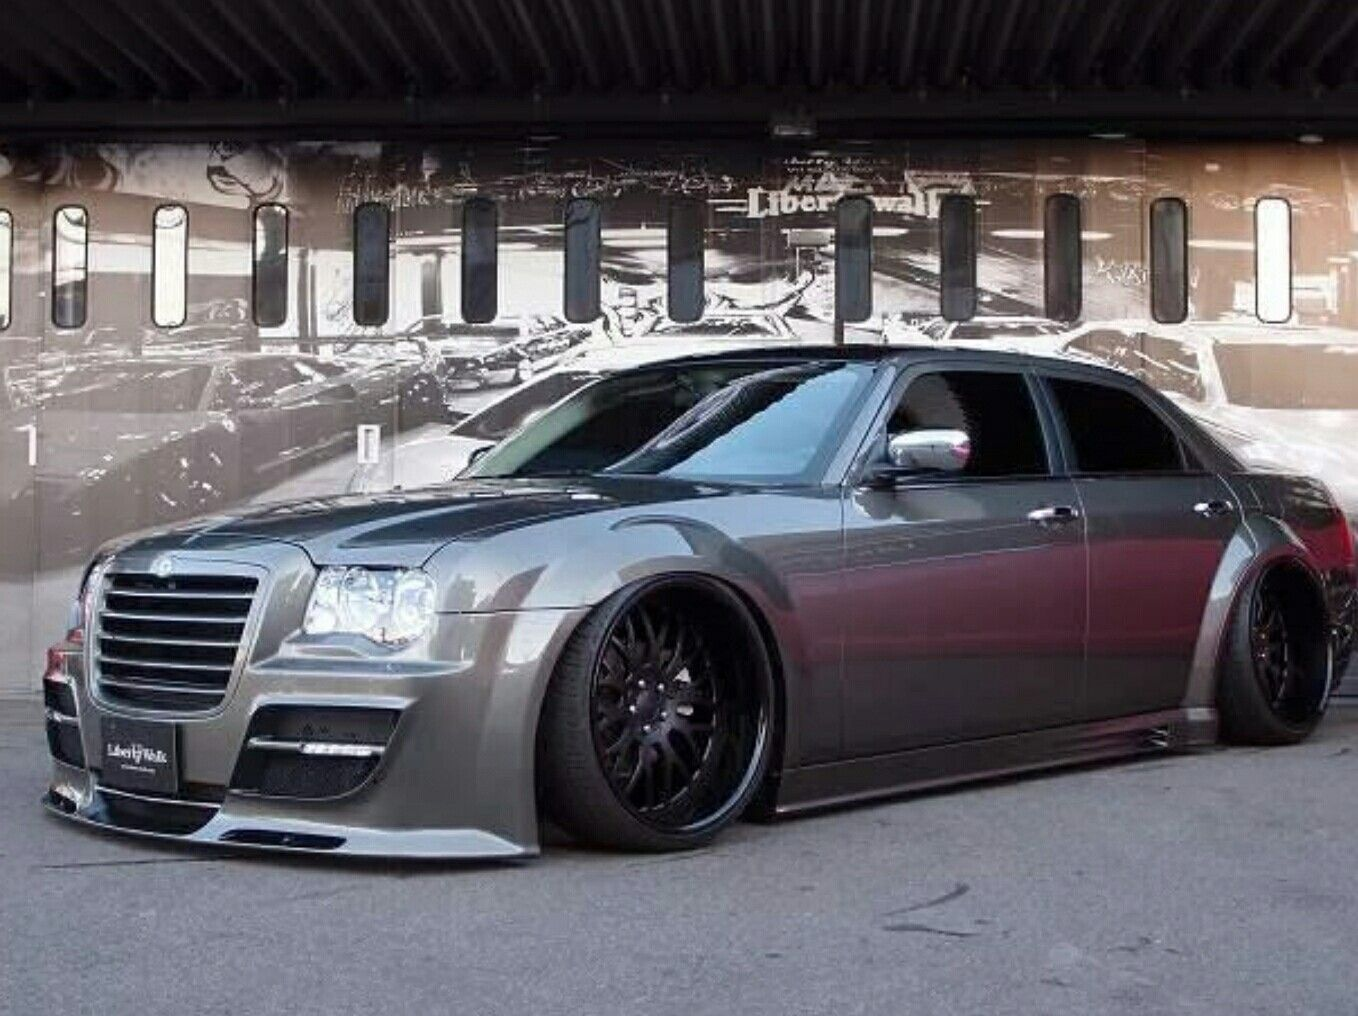 Pin By Chris Mcclure On 300s Chrysler 300 Chrysler 300 Custom